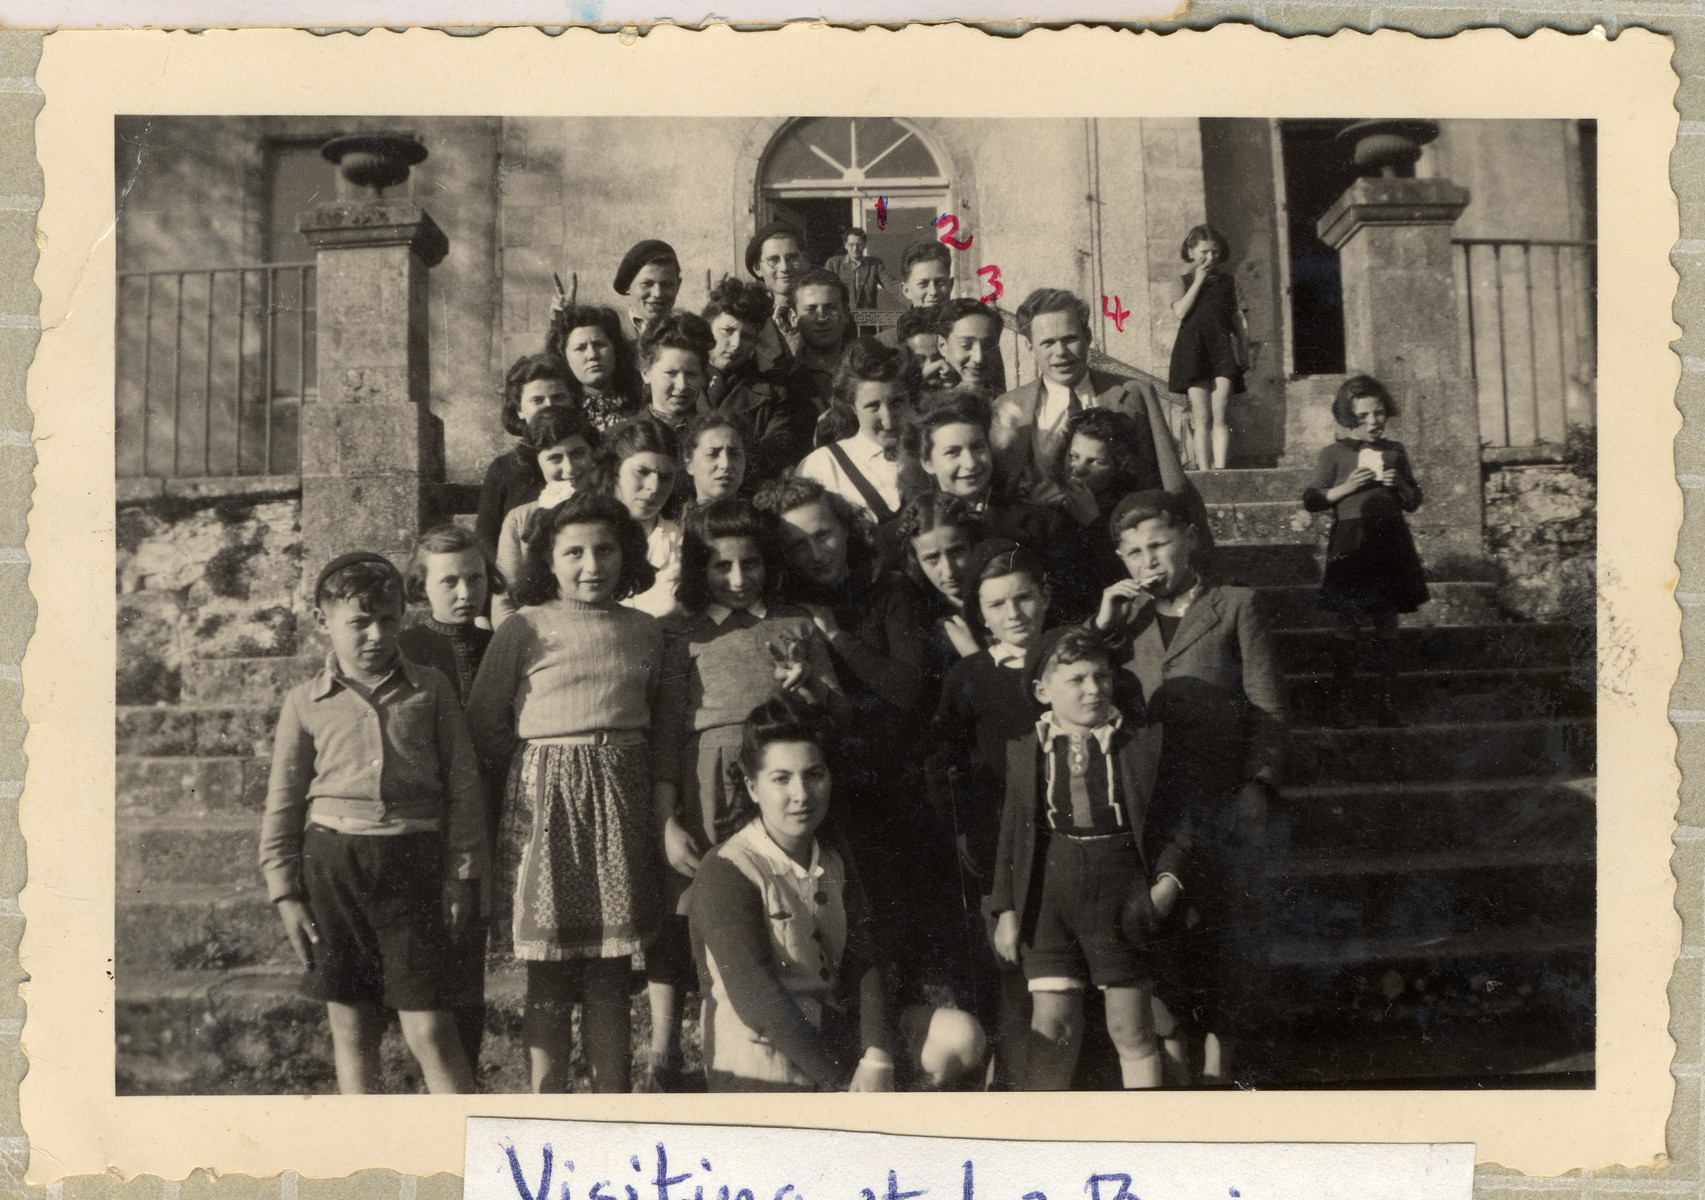 Group portrait of Jewish DP youth outside the Chateau La Borie children's home in Limoges.  Among those pictures are Ruth and Hugo Zarnicer and Herbert Karliner.